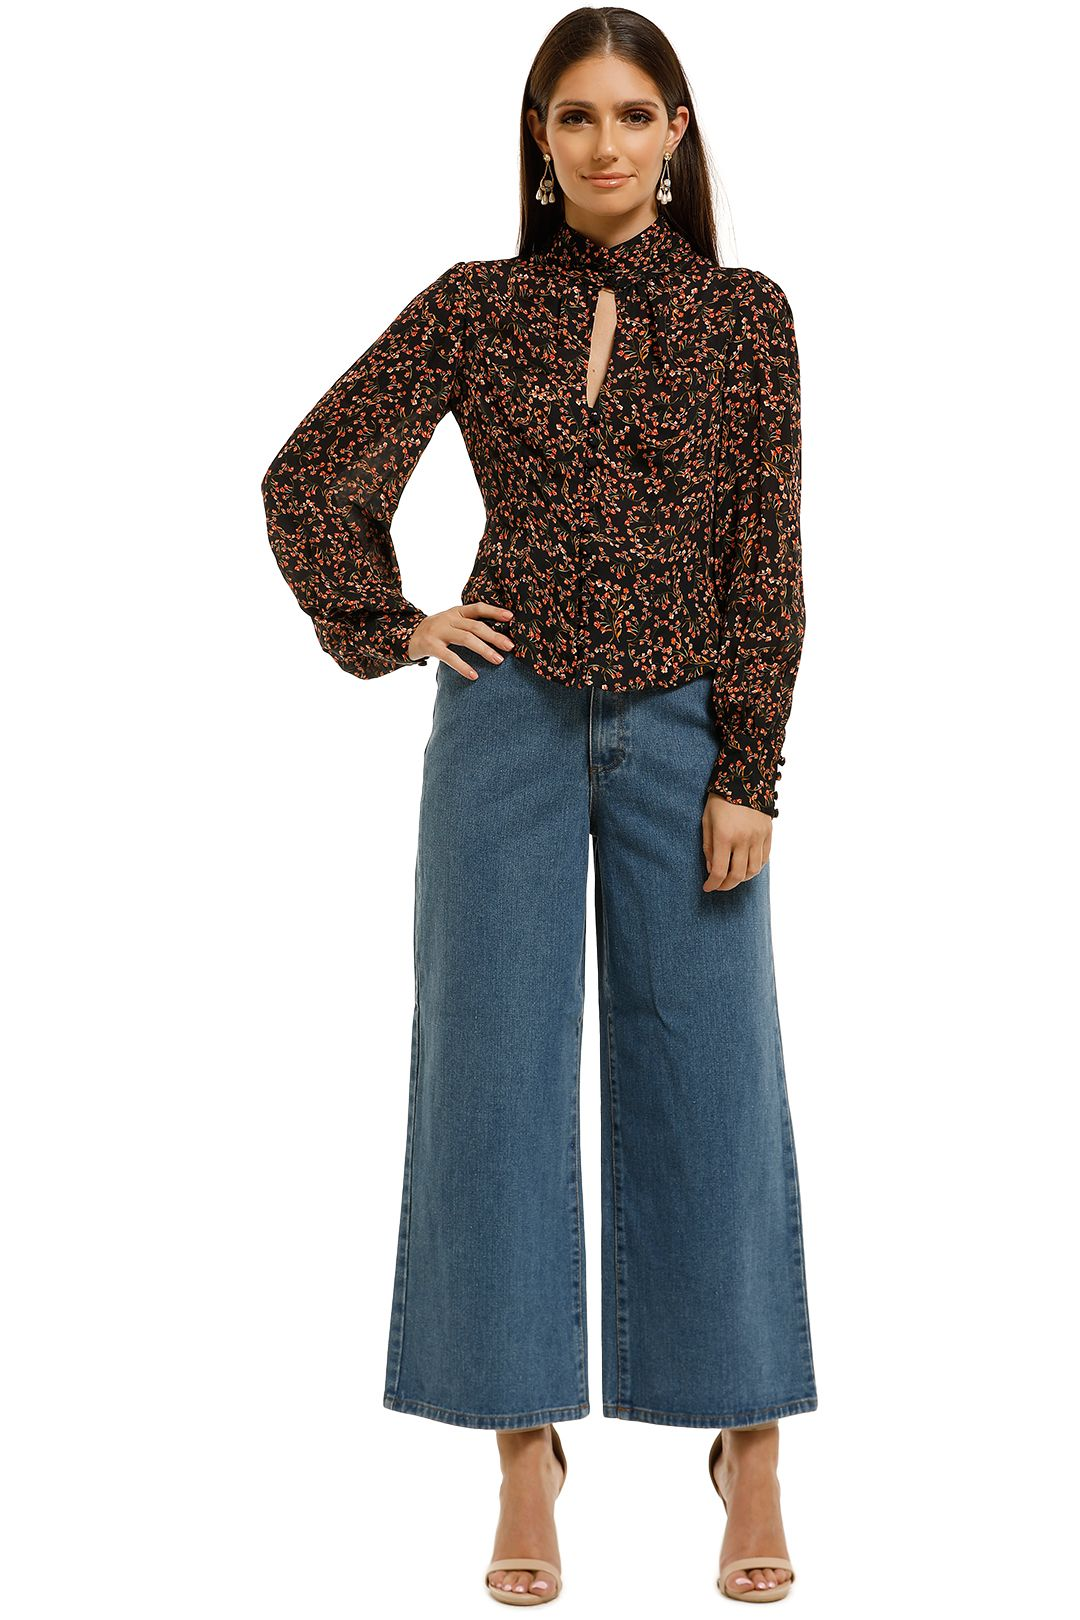 Nicholas-the-Label-High-Neck-Top-Persimmon-Multi-Front